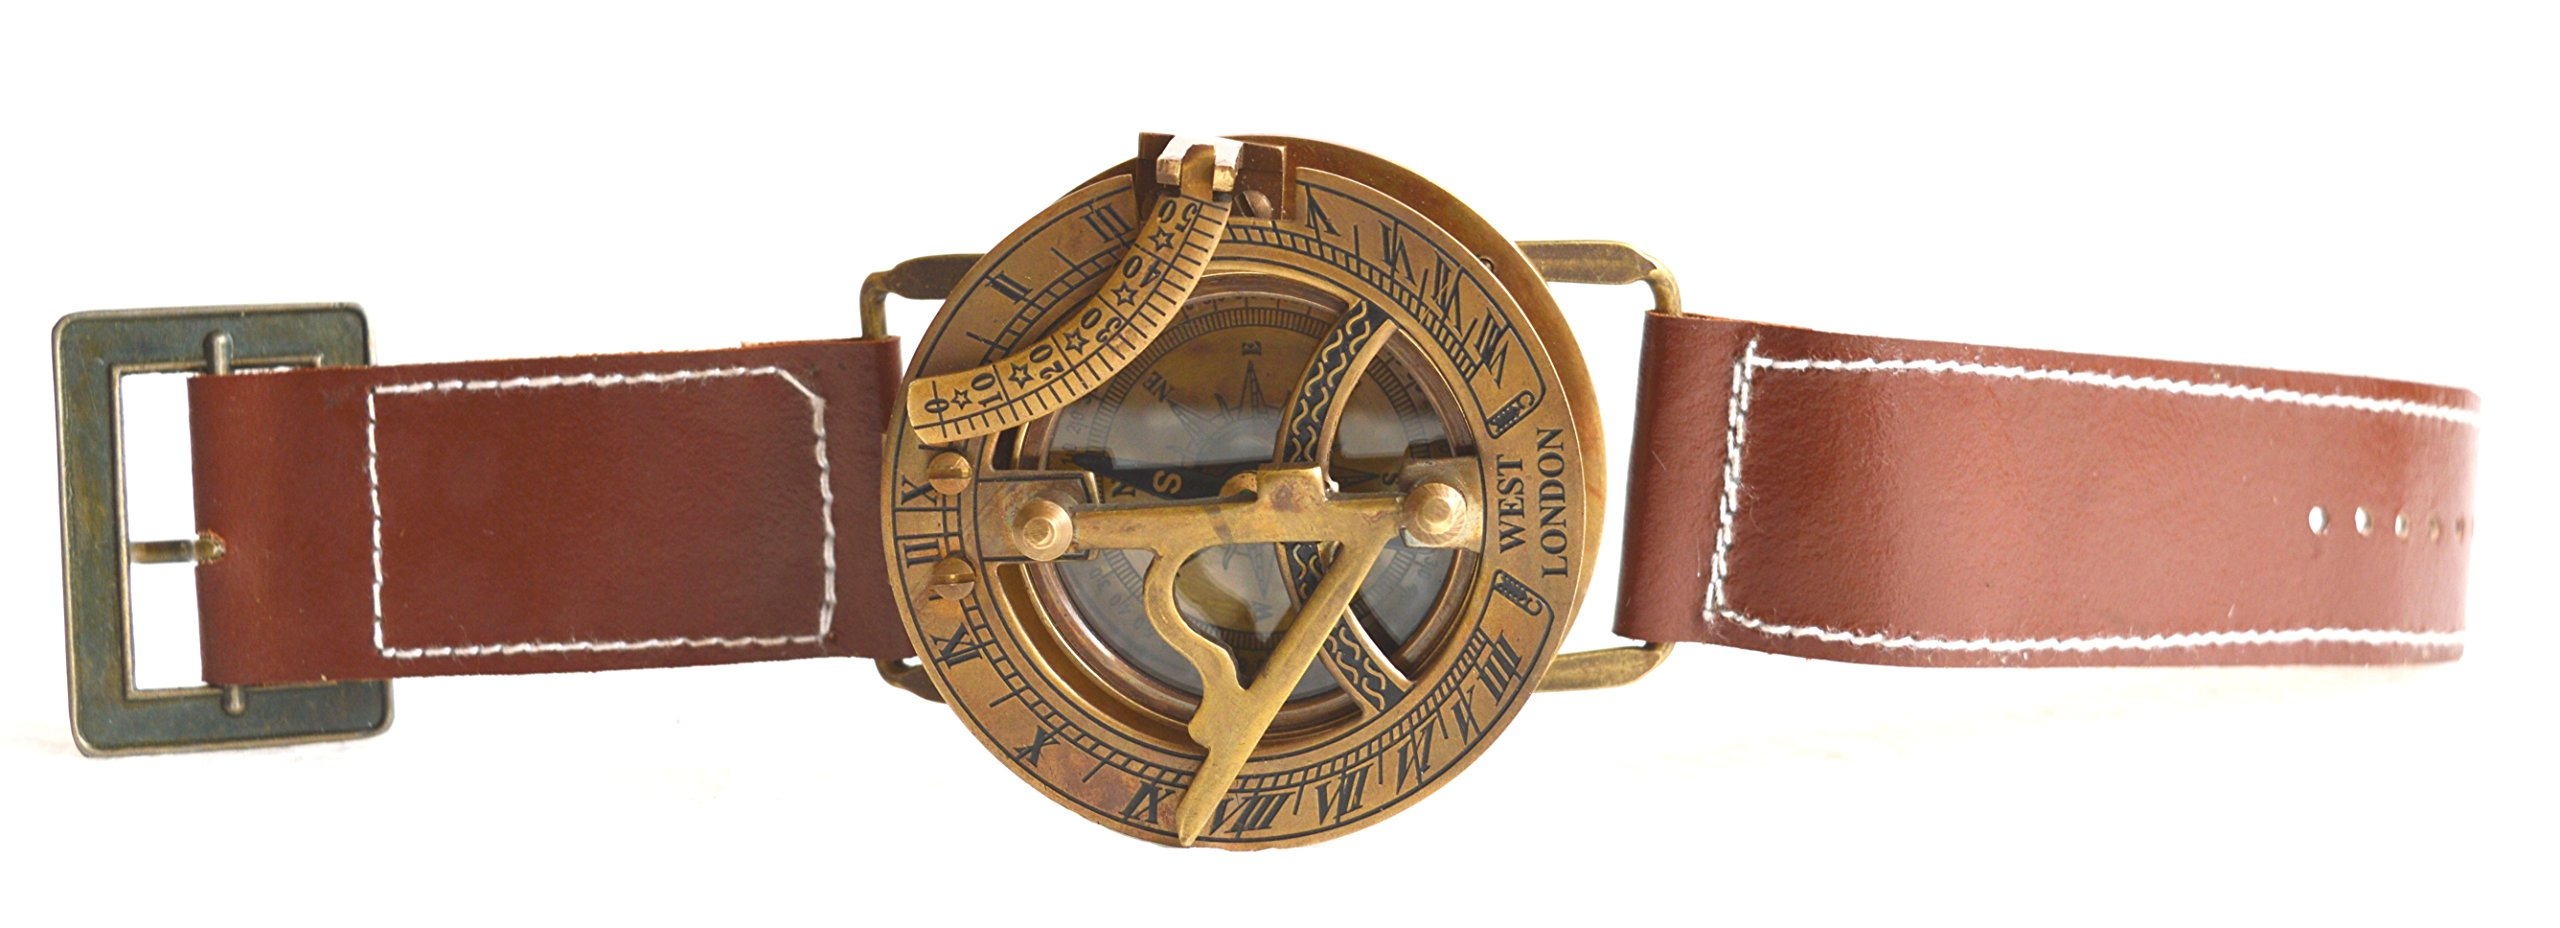 SA International Antique Finish Vintage Style Brass Wrist Watch Compass-Nautical Collectable Sundial Compass-Marine Compass Gift Compass-Nautical Gift